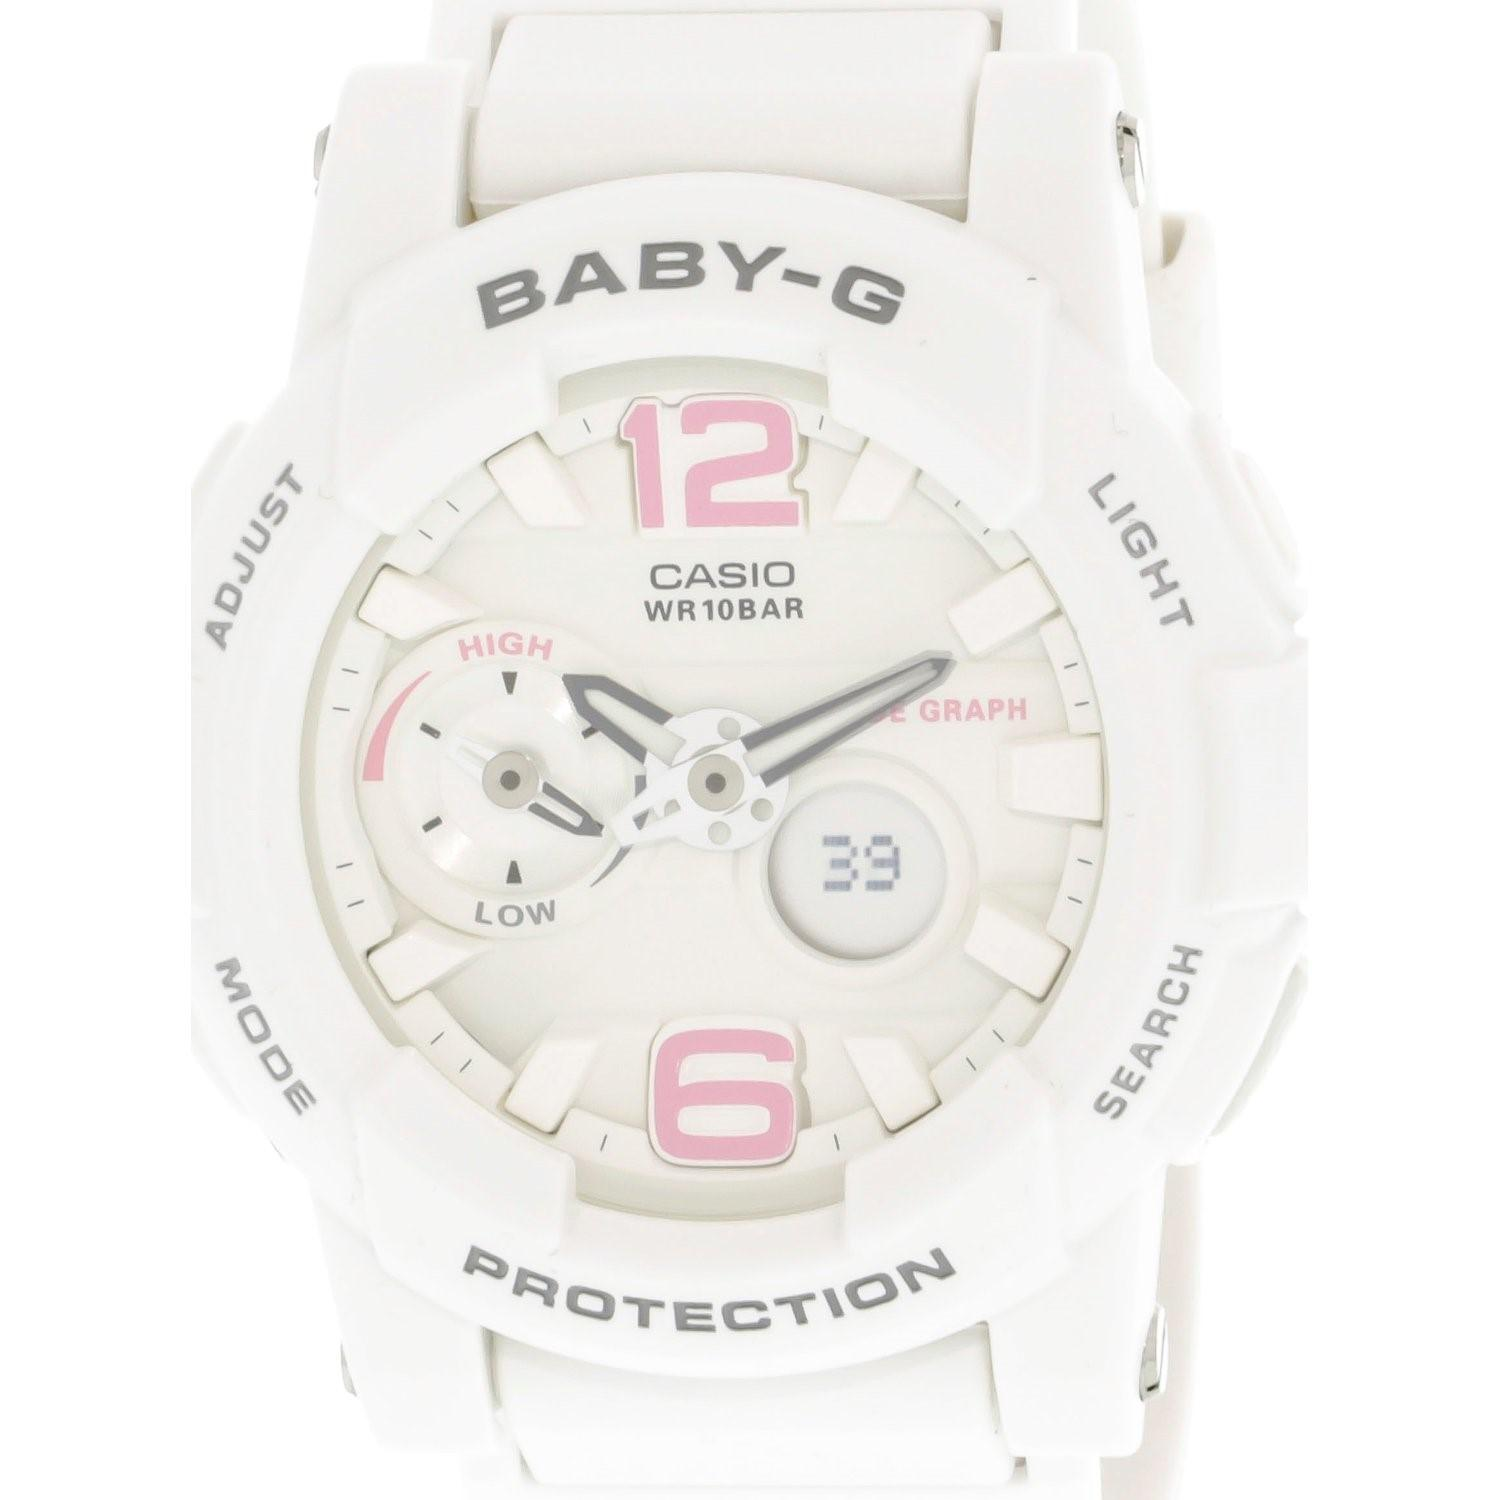 Lyst G Shock Baby Bga180be 7b White Resin Japanese Quartz Diving Casio Bga 180 7b1 Gallery